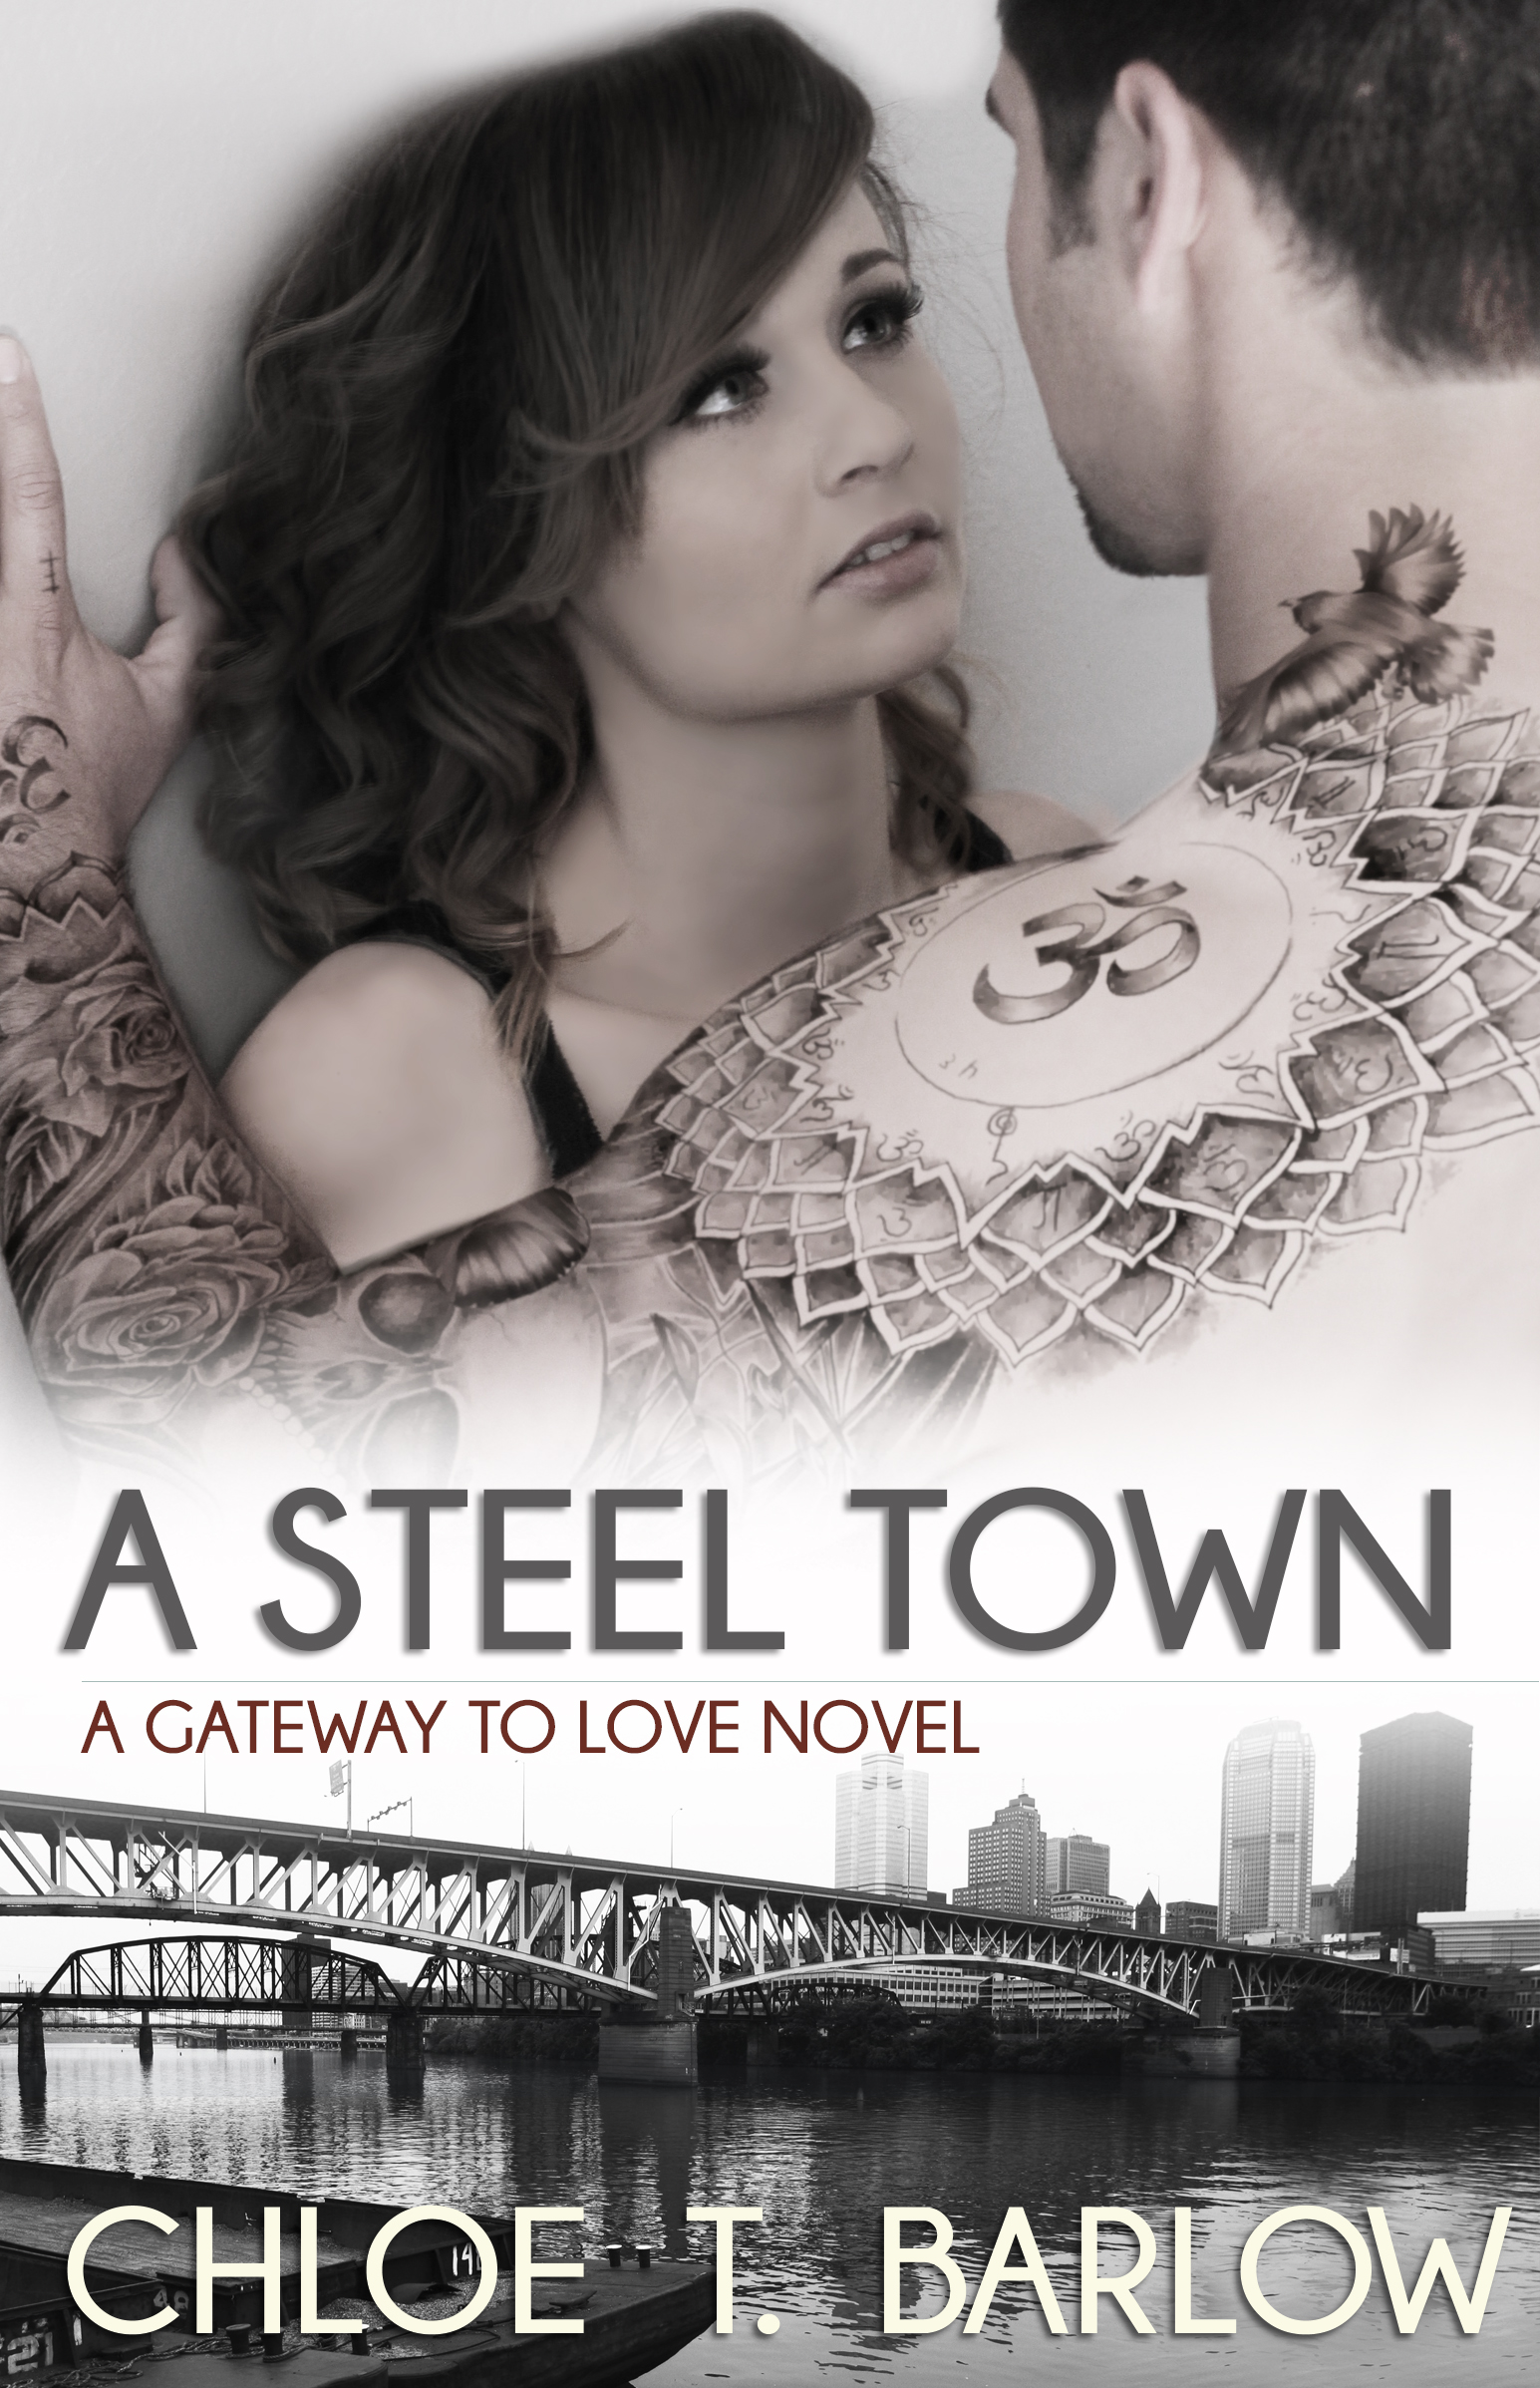 400ASteelTown_October2015_CoverOnly